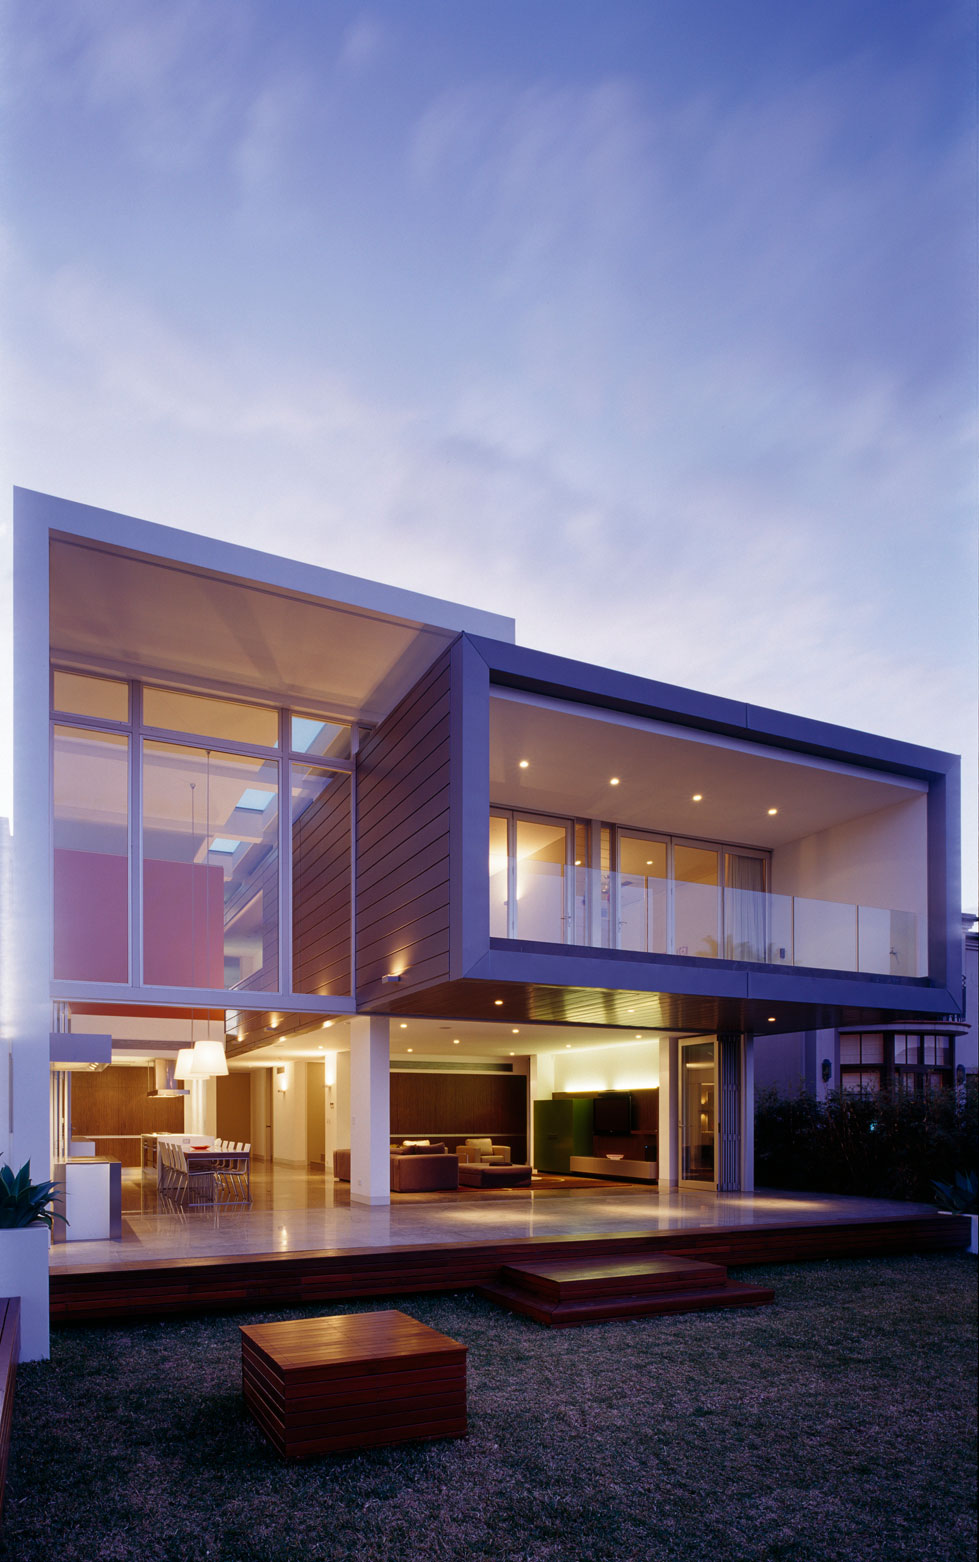 Luxurious and expansive sensory interior delight sizzles for Modern villa architecture design